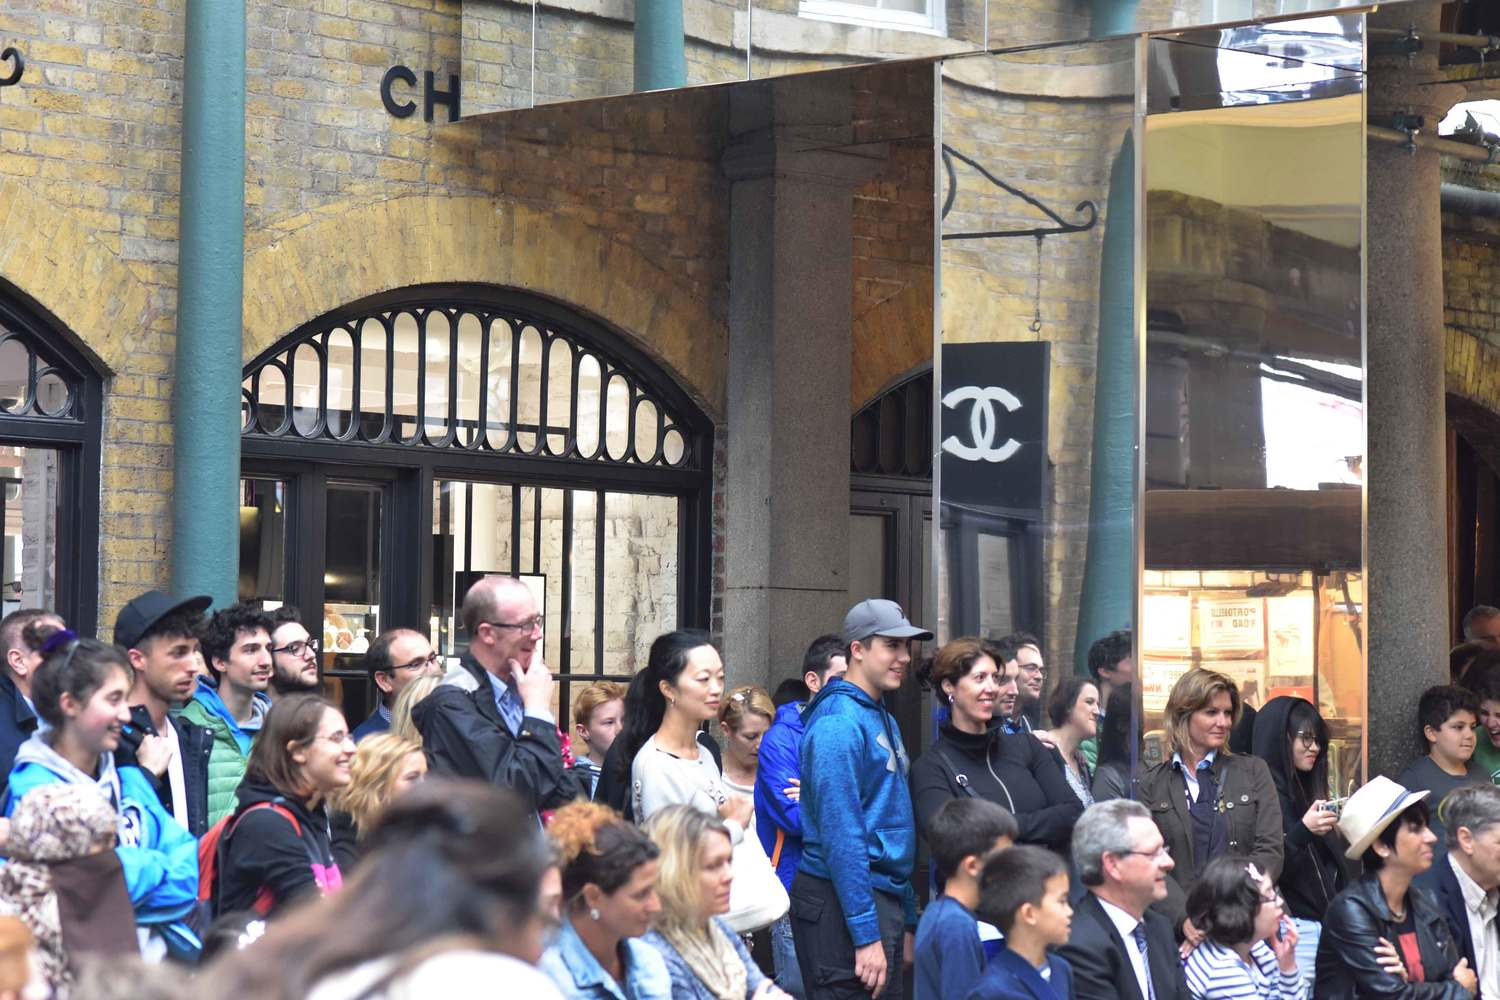 Crowd watching miming and juggling acts, Covent Garden Apple Market, London, UK. Image©thingstodot.com